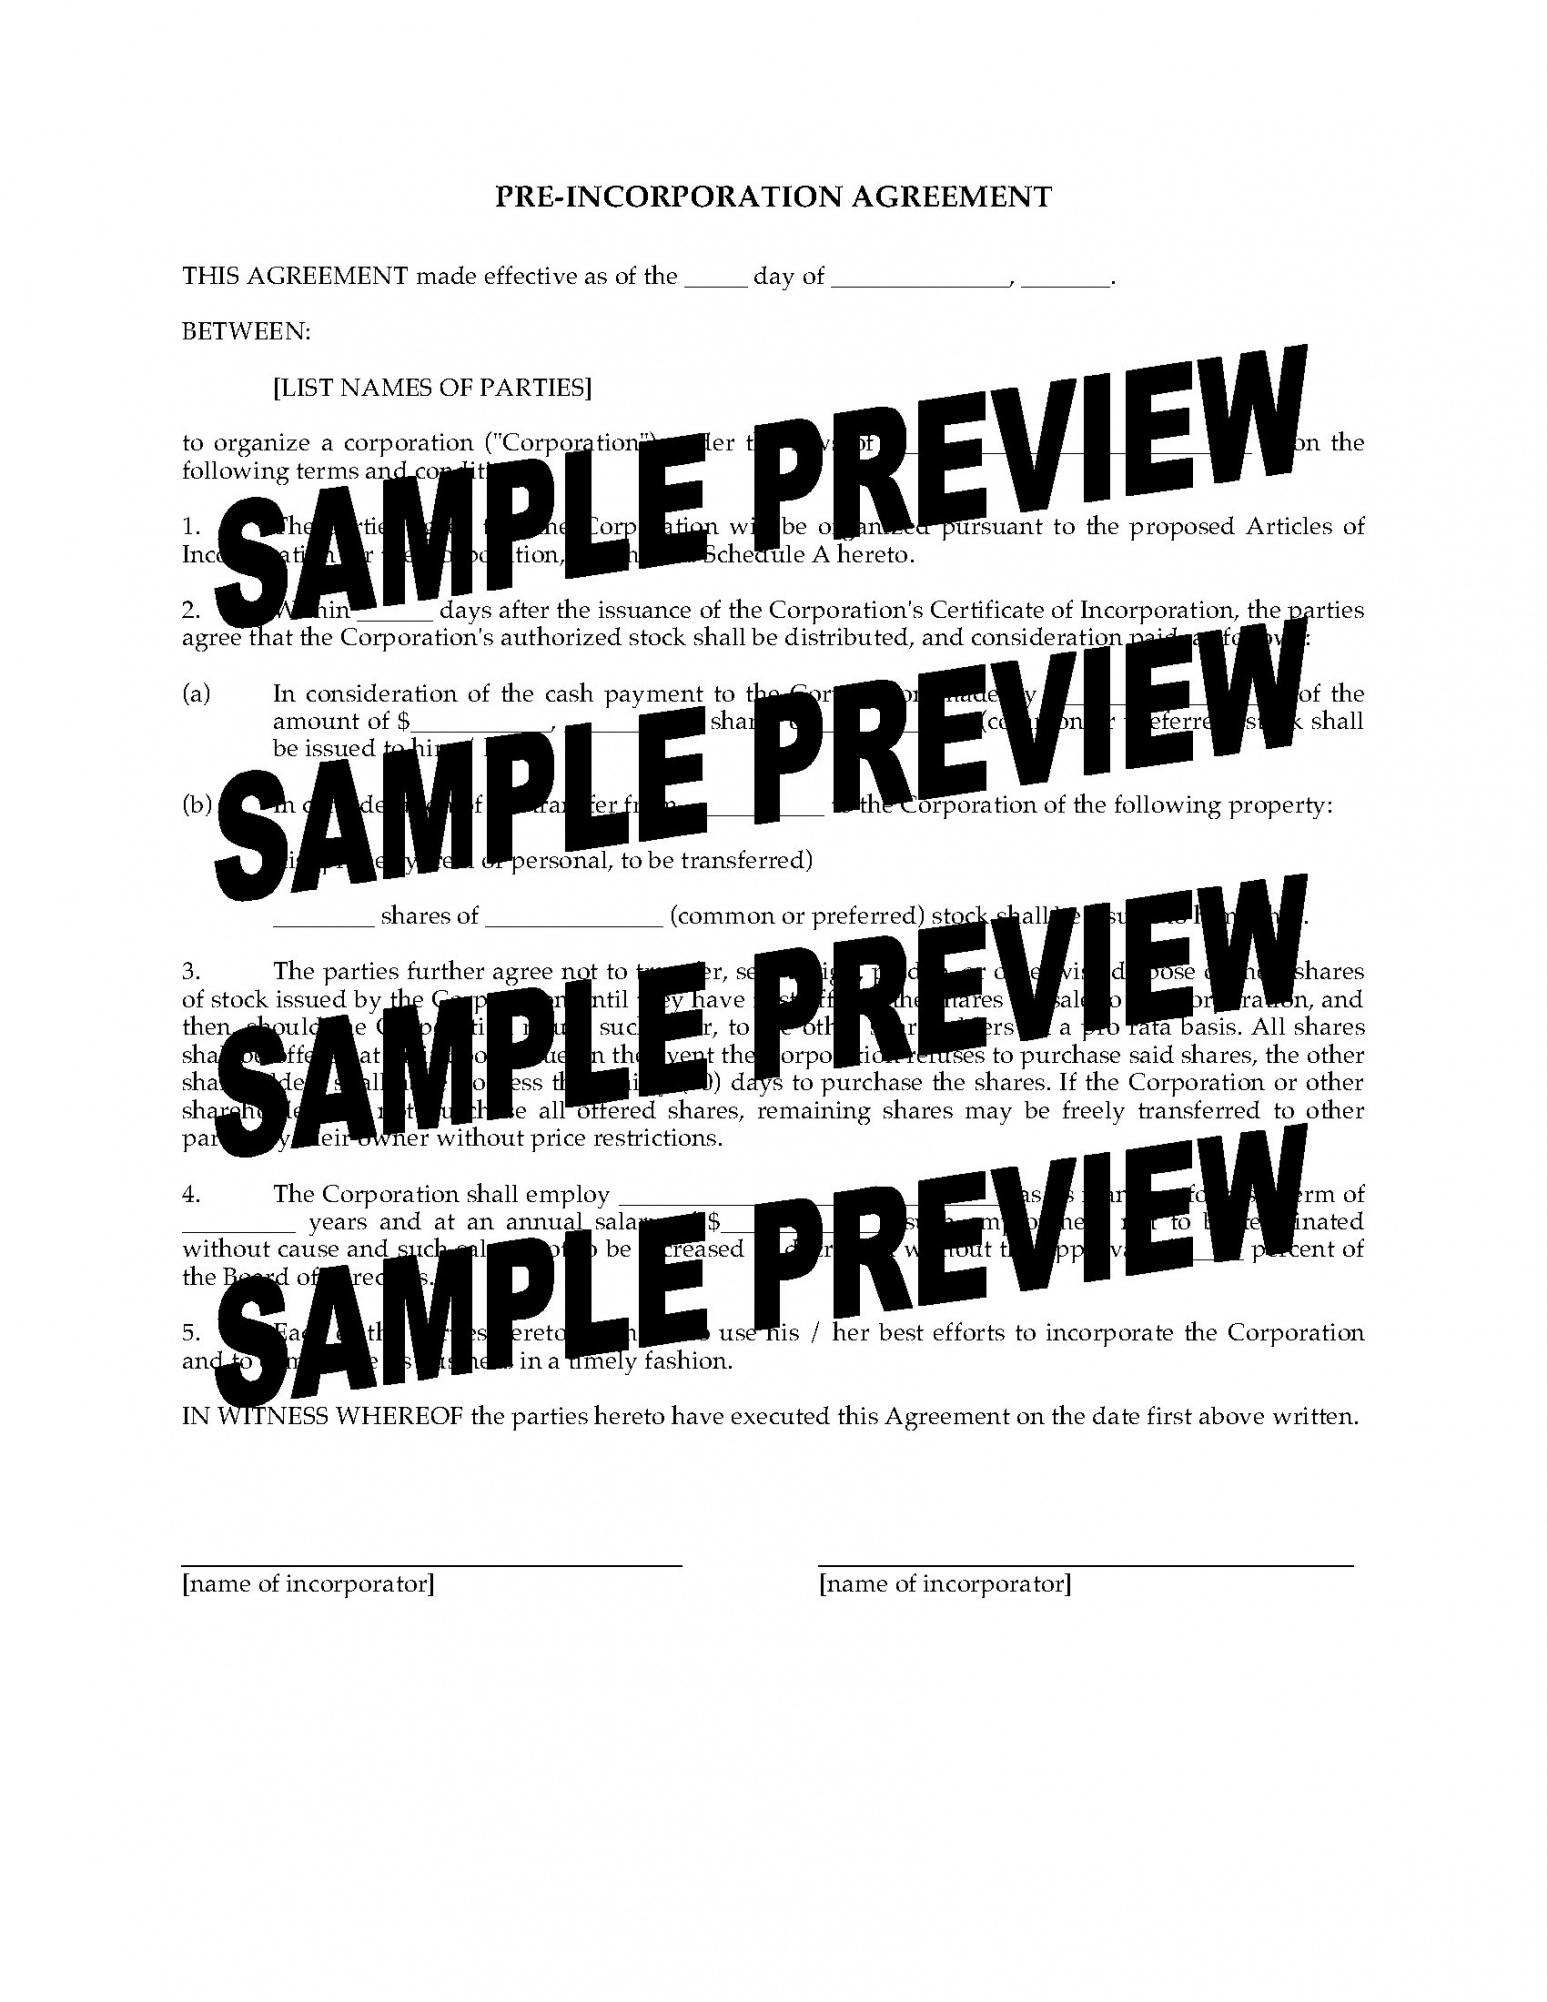 printable preincorporation agreement pre incorporation agreement template